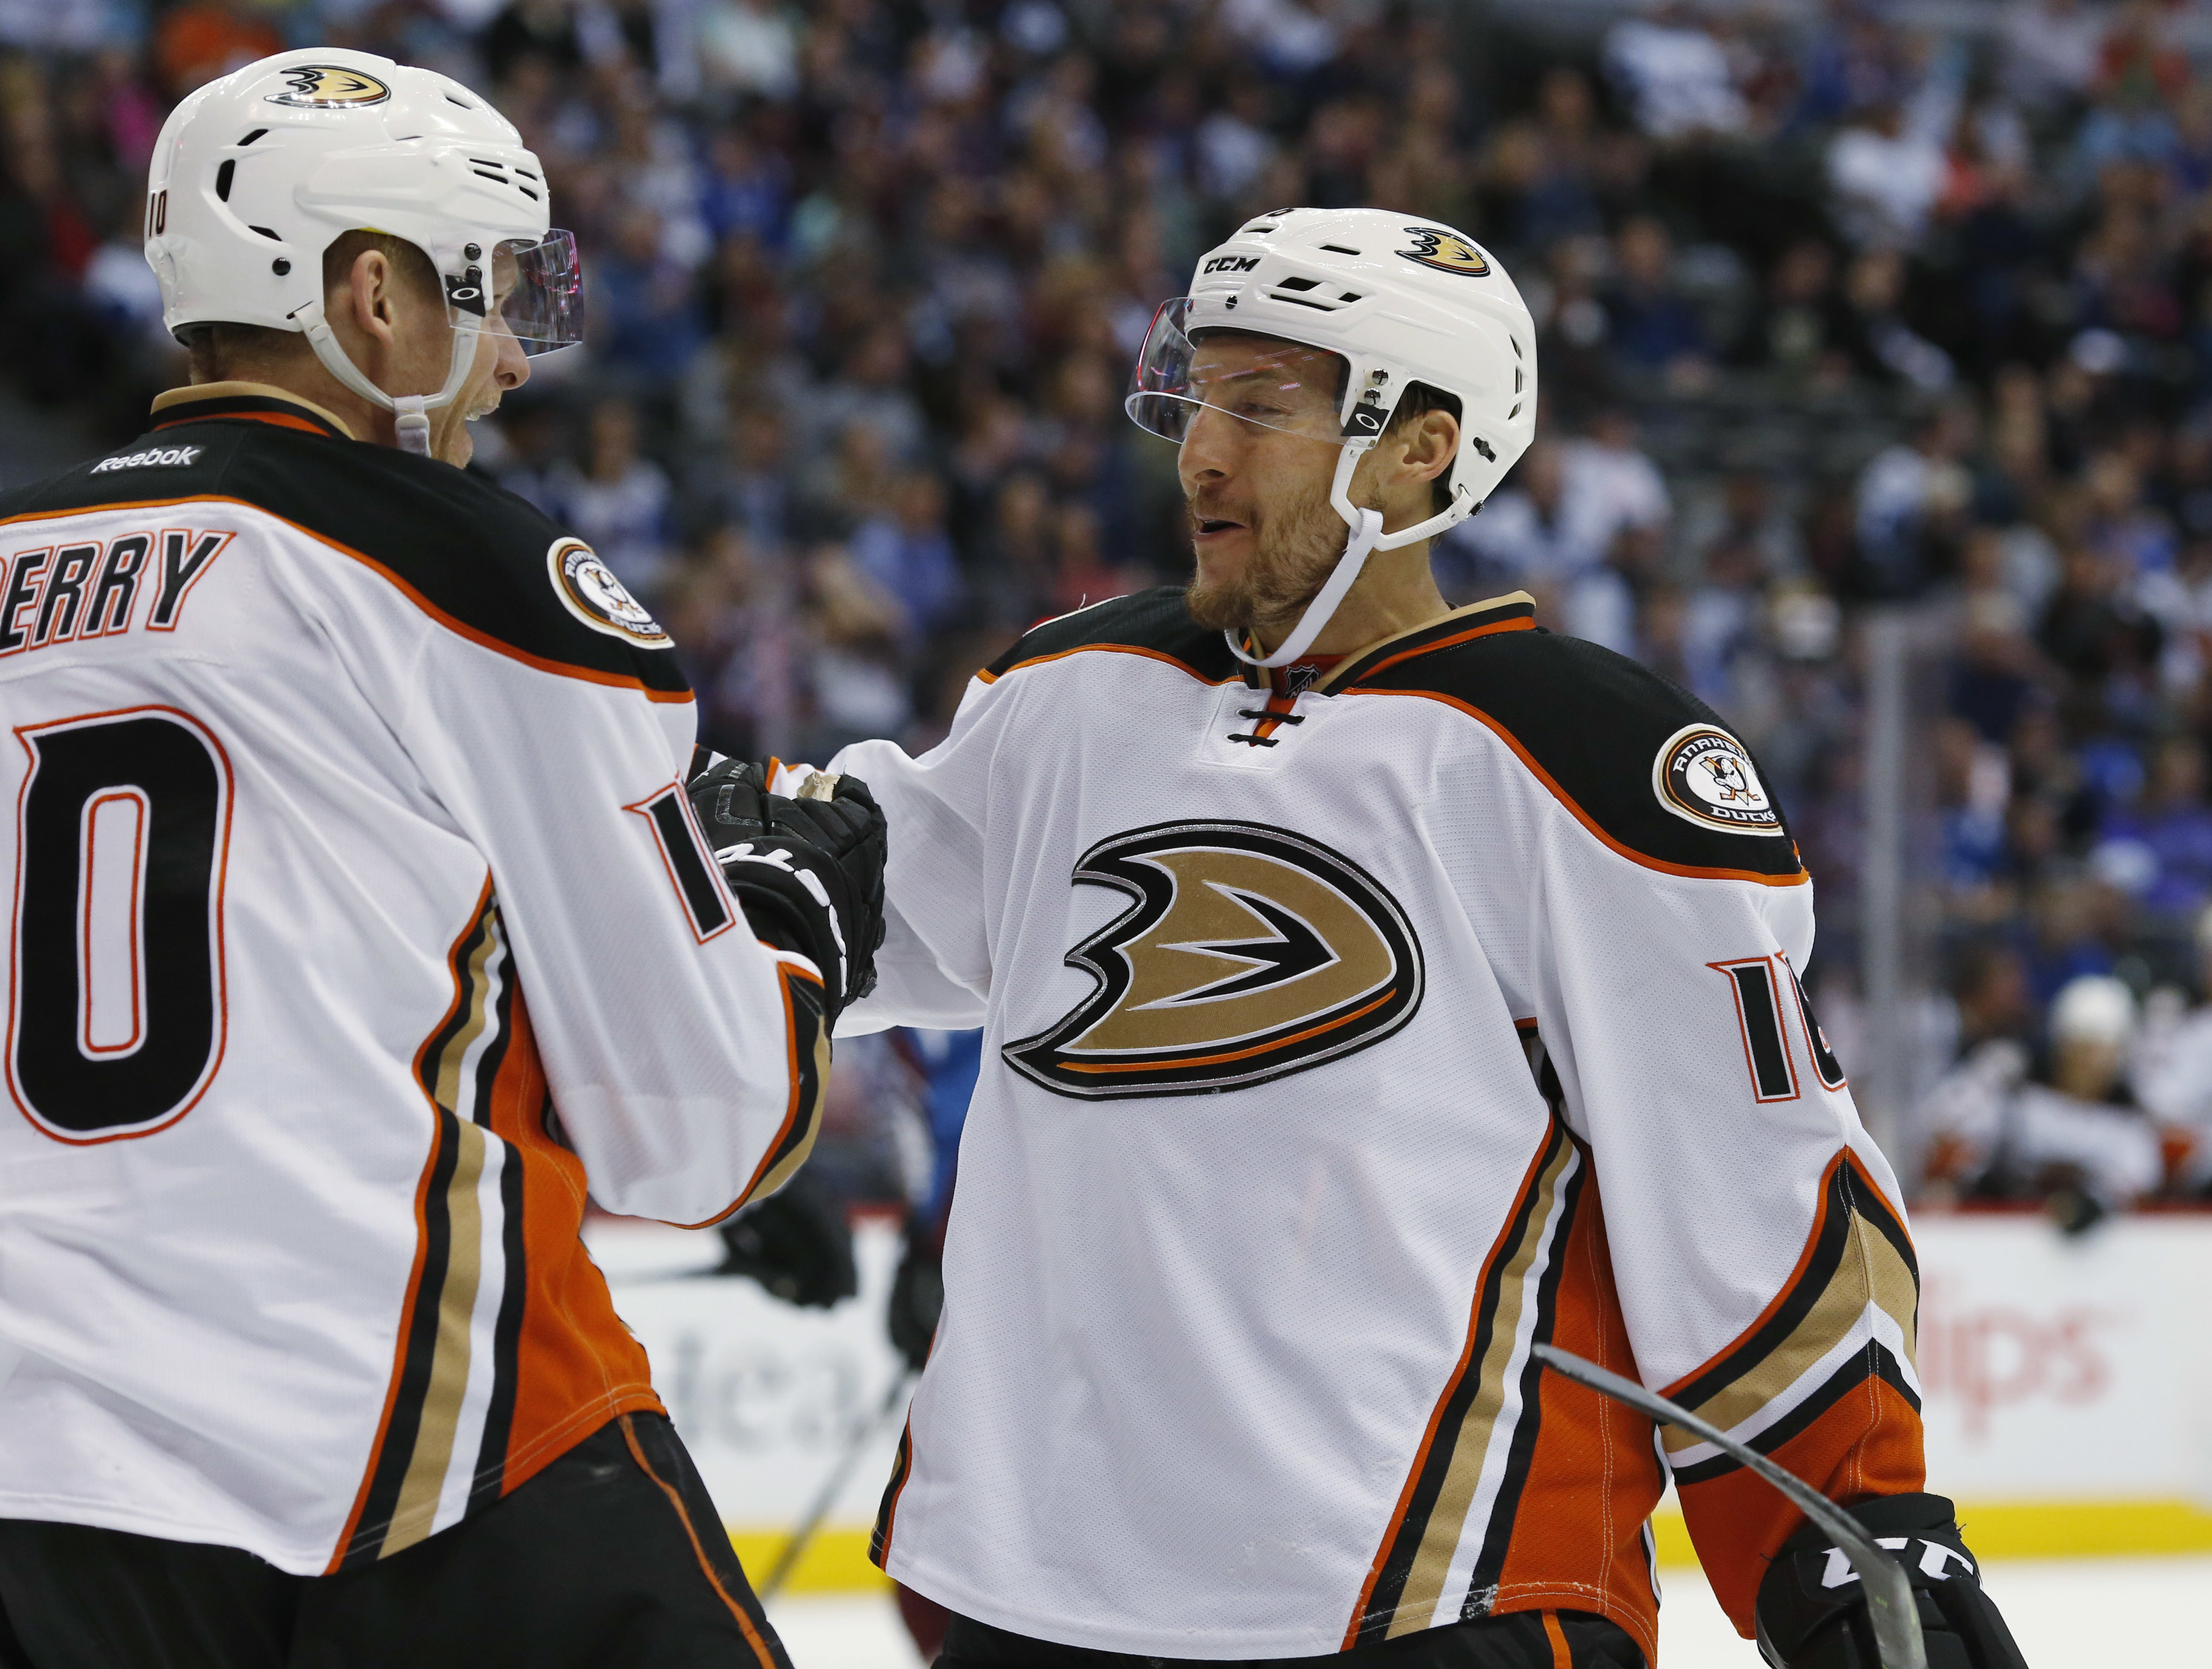 Anaheim Ducks right wing Corey Perry, left, congratulates left wing Ryan Garbutt after scoring a goal against the Colorado Avalanche in the second period of an NHL hockey game Saturday, April 9, 2016, in Denver. (AP Photo/David Zalubowski)